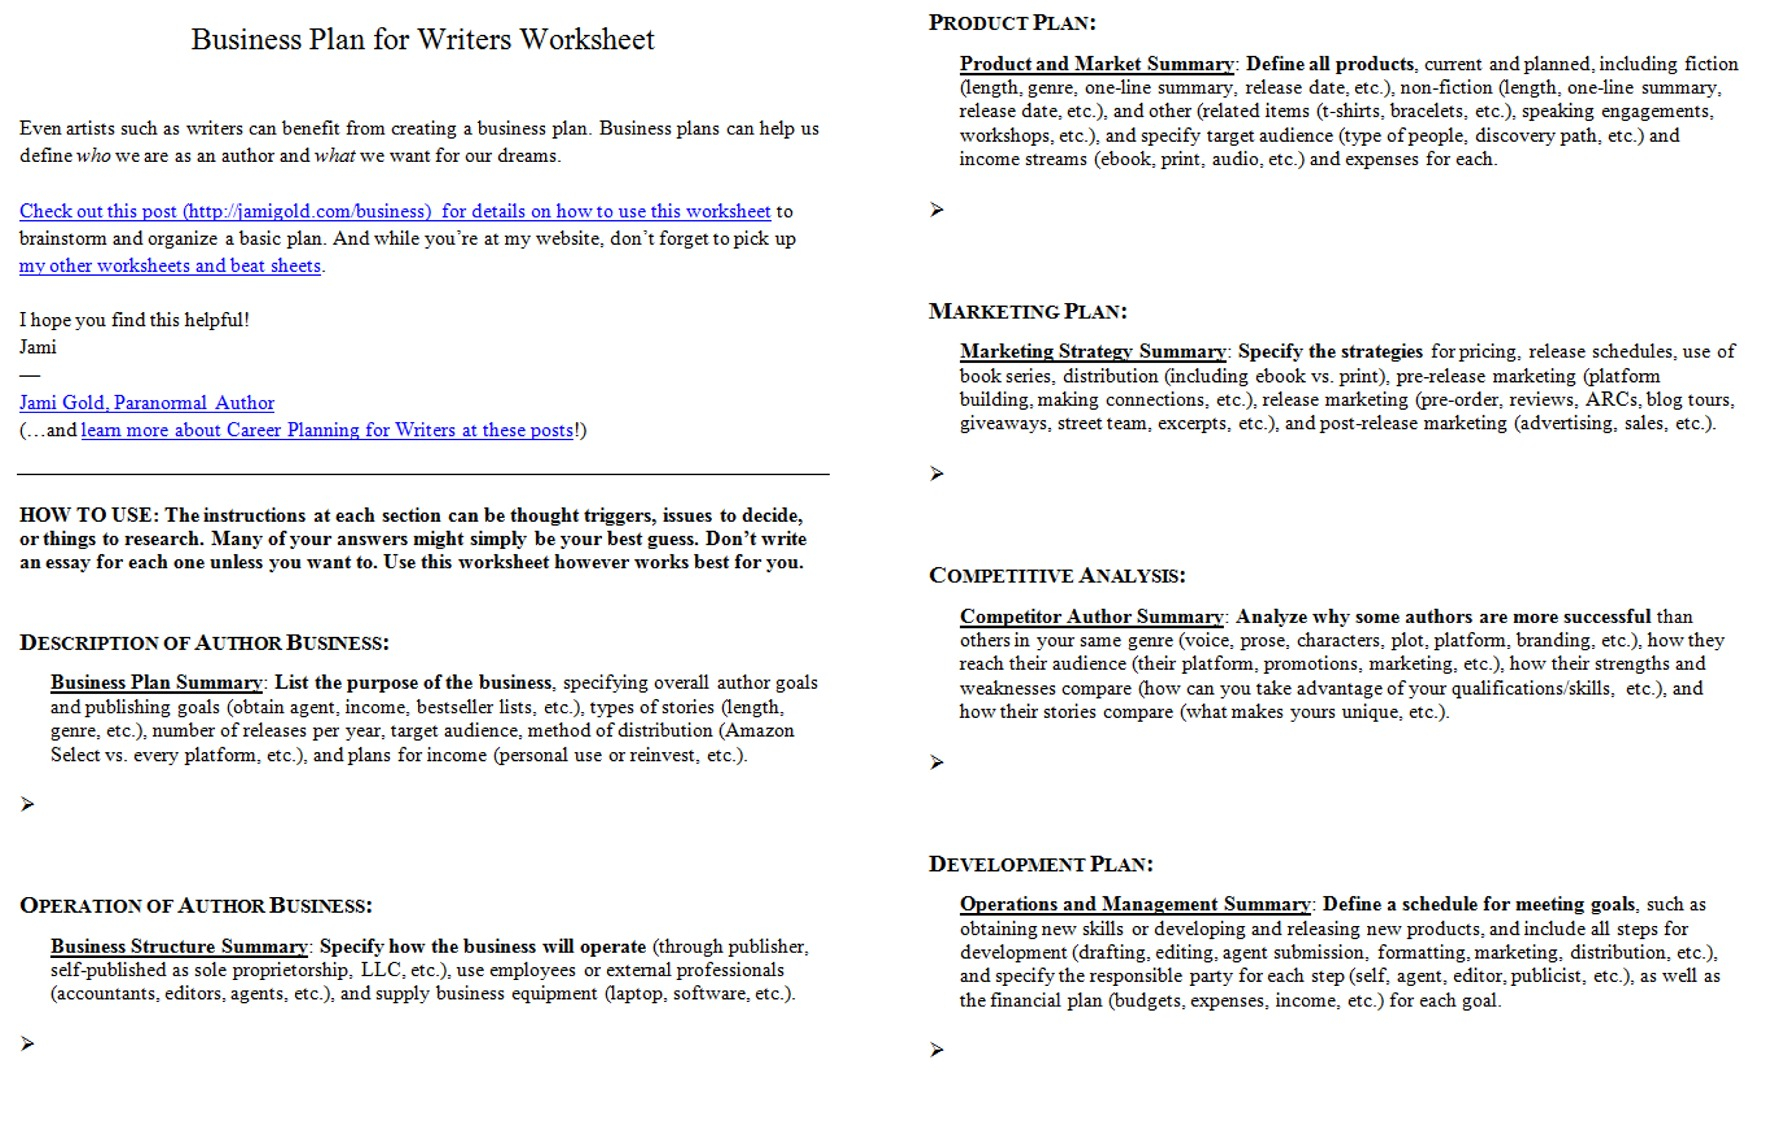 Aldiablosus  Unique Worksheets For Writers  Jami Gold Paranormal Author With Magnificent Screen Shot Of Both Pages Of The Business Plan For Writers Worksheet With Lovely Multiplication Worksheet For Grade  Also Number Sequence Worksheets For Kindergarten In Addition Grade  Symmetry Worksheets And Great Lakes Worksheets As Well As Maths Worksheets Year  Additionally Worksheets For Class  From Jamigoldcom With Aldiablosus  Magnificent Worksheets For Writers  Jami Gold Paranormal Author With Lovely Screen Shot Of Both Pages Of The Business Plan For Writers Worksheet And Unique Multiplication Worksheet For Grade  Also Number Sequence Worksheets For Kindergarten In Addition Grade  Symmetry Worksheets From Jamigoldcom